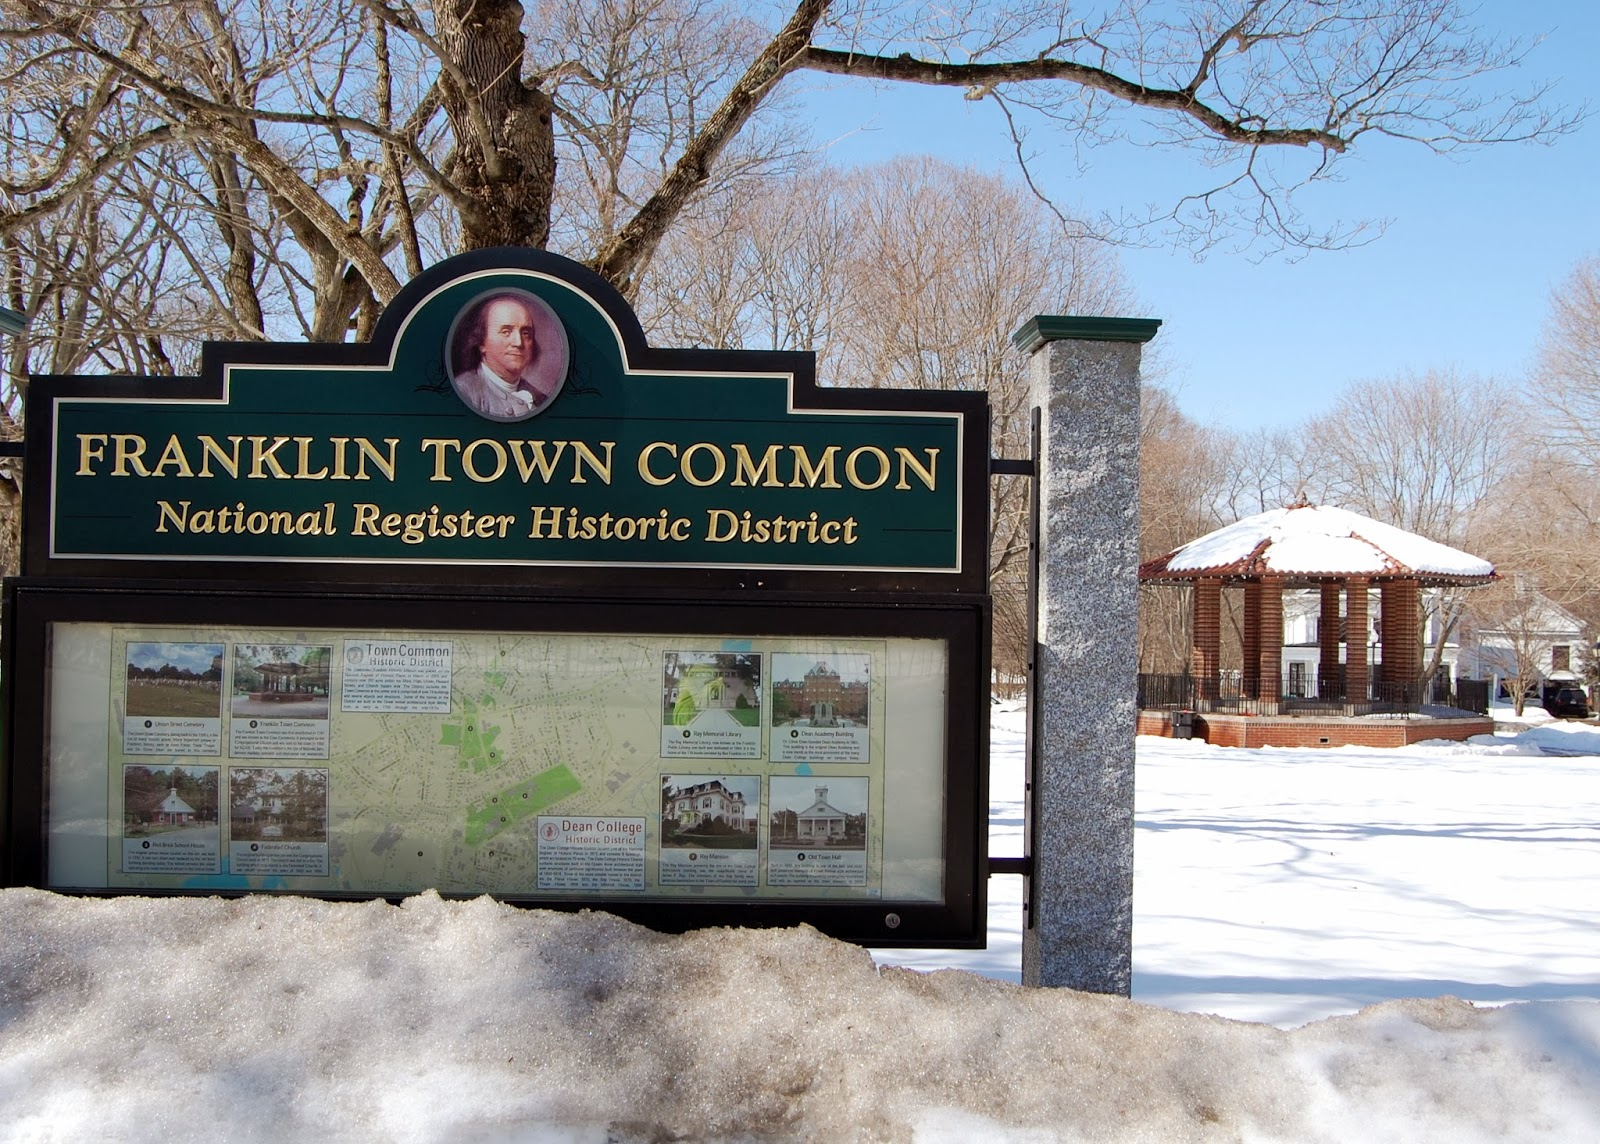 National Register Historic District marker on the Franklin Town Common